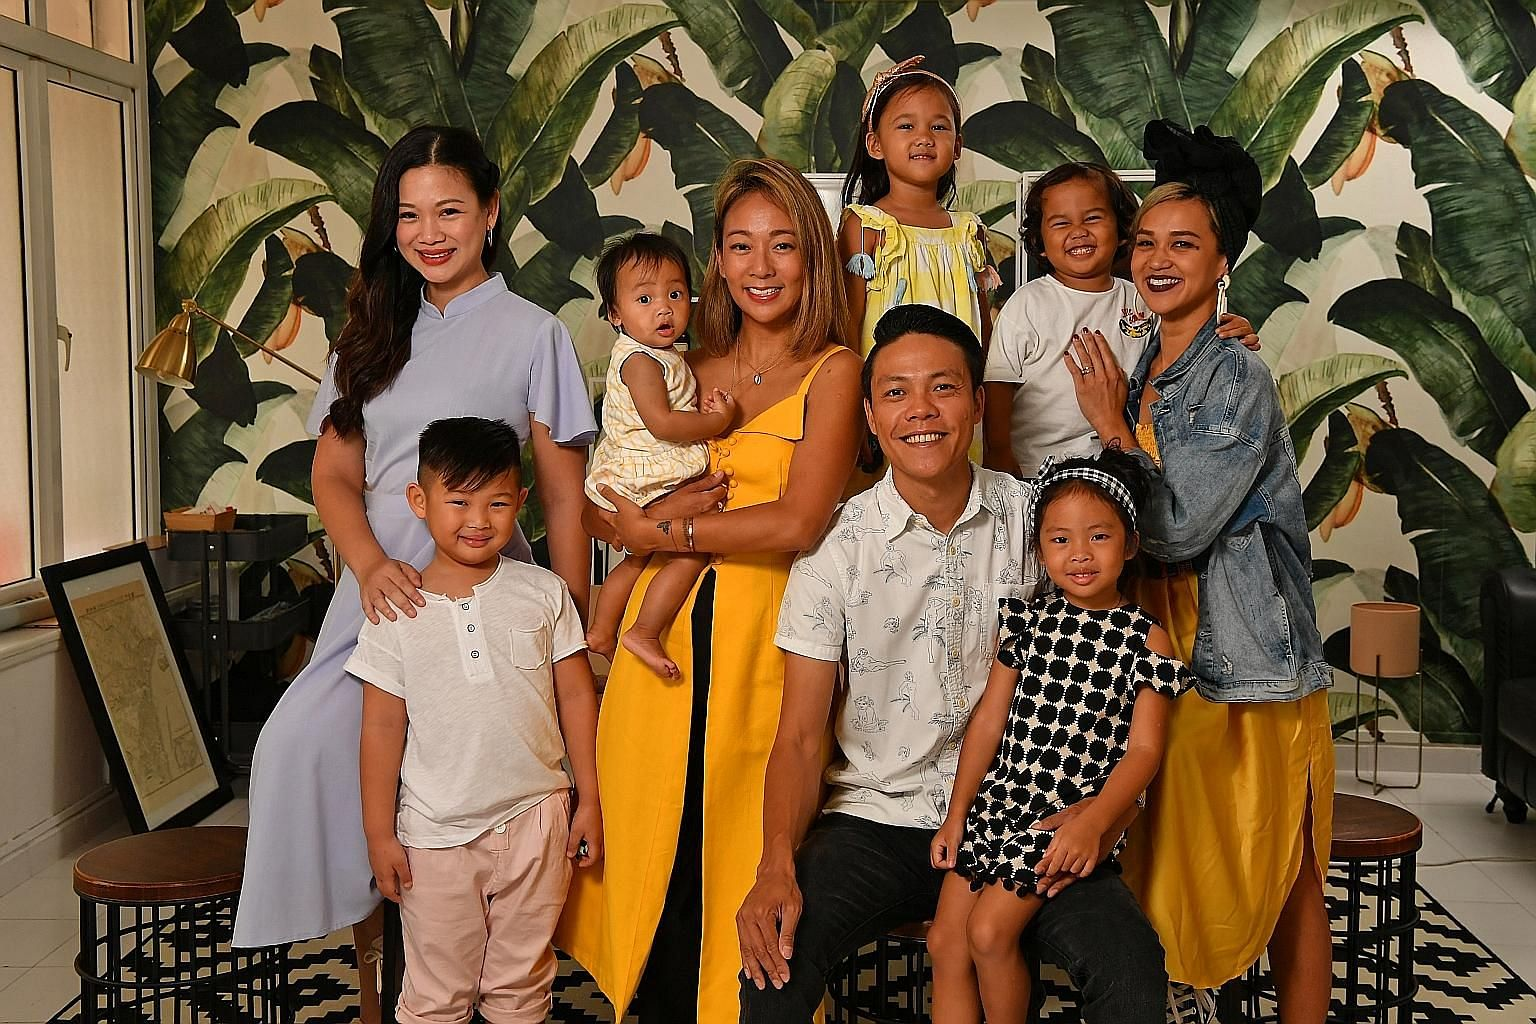 Founders of the Life Beyond Grades movement (from left): Ms Tjin Lee, with her son, Tyler Lim; Ms Charmaine Seah, carrying daughter Dahlia Jaymes Ong; Mr Derek Ong, with daughter Charlie Rose; and Ms Aarika Lee with her children, Ari Jon (in white T-